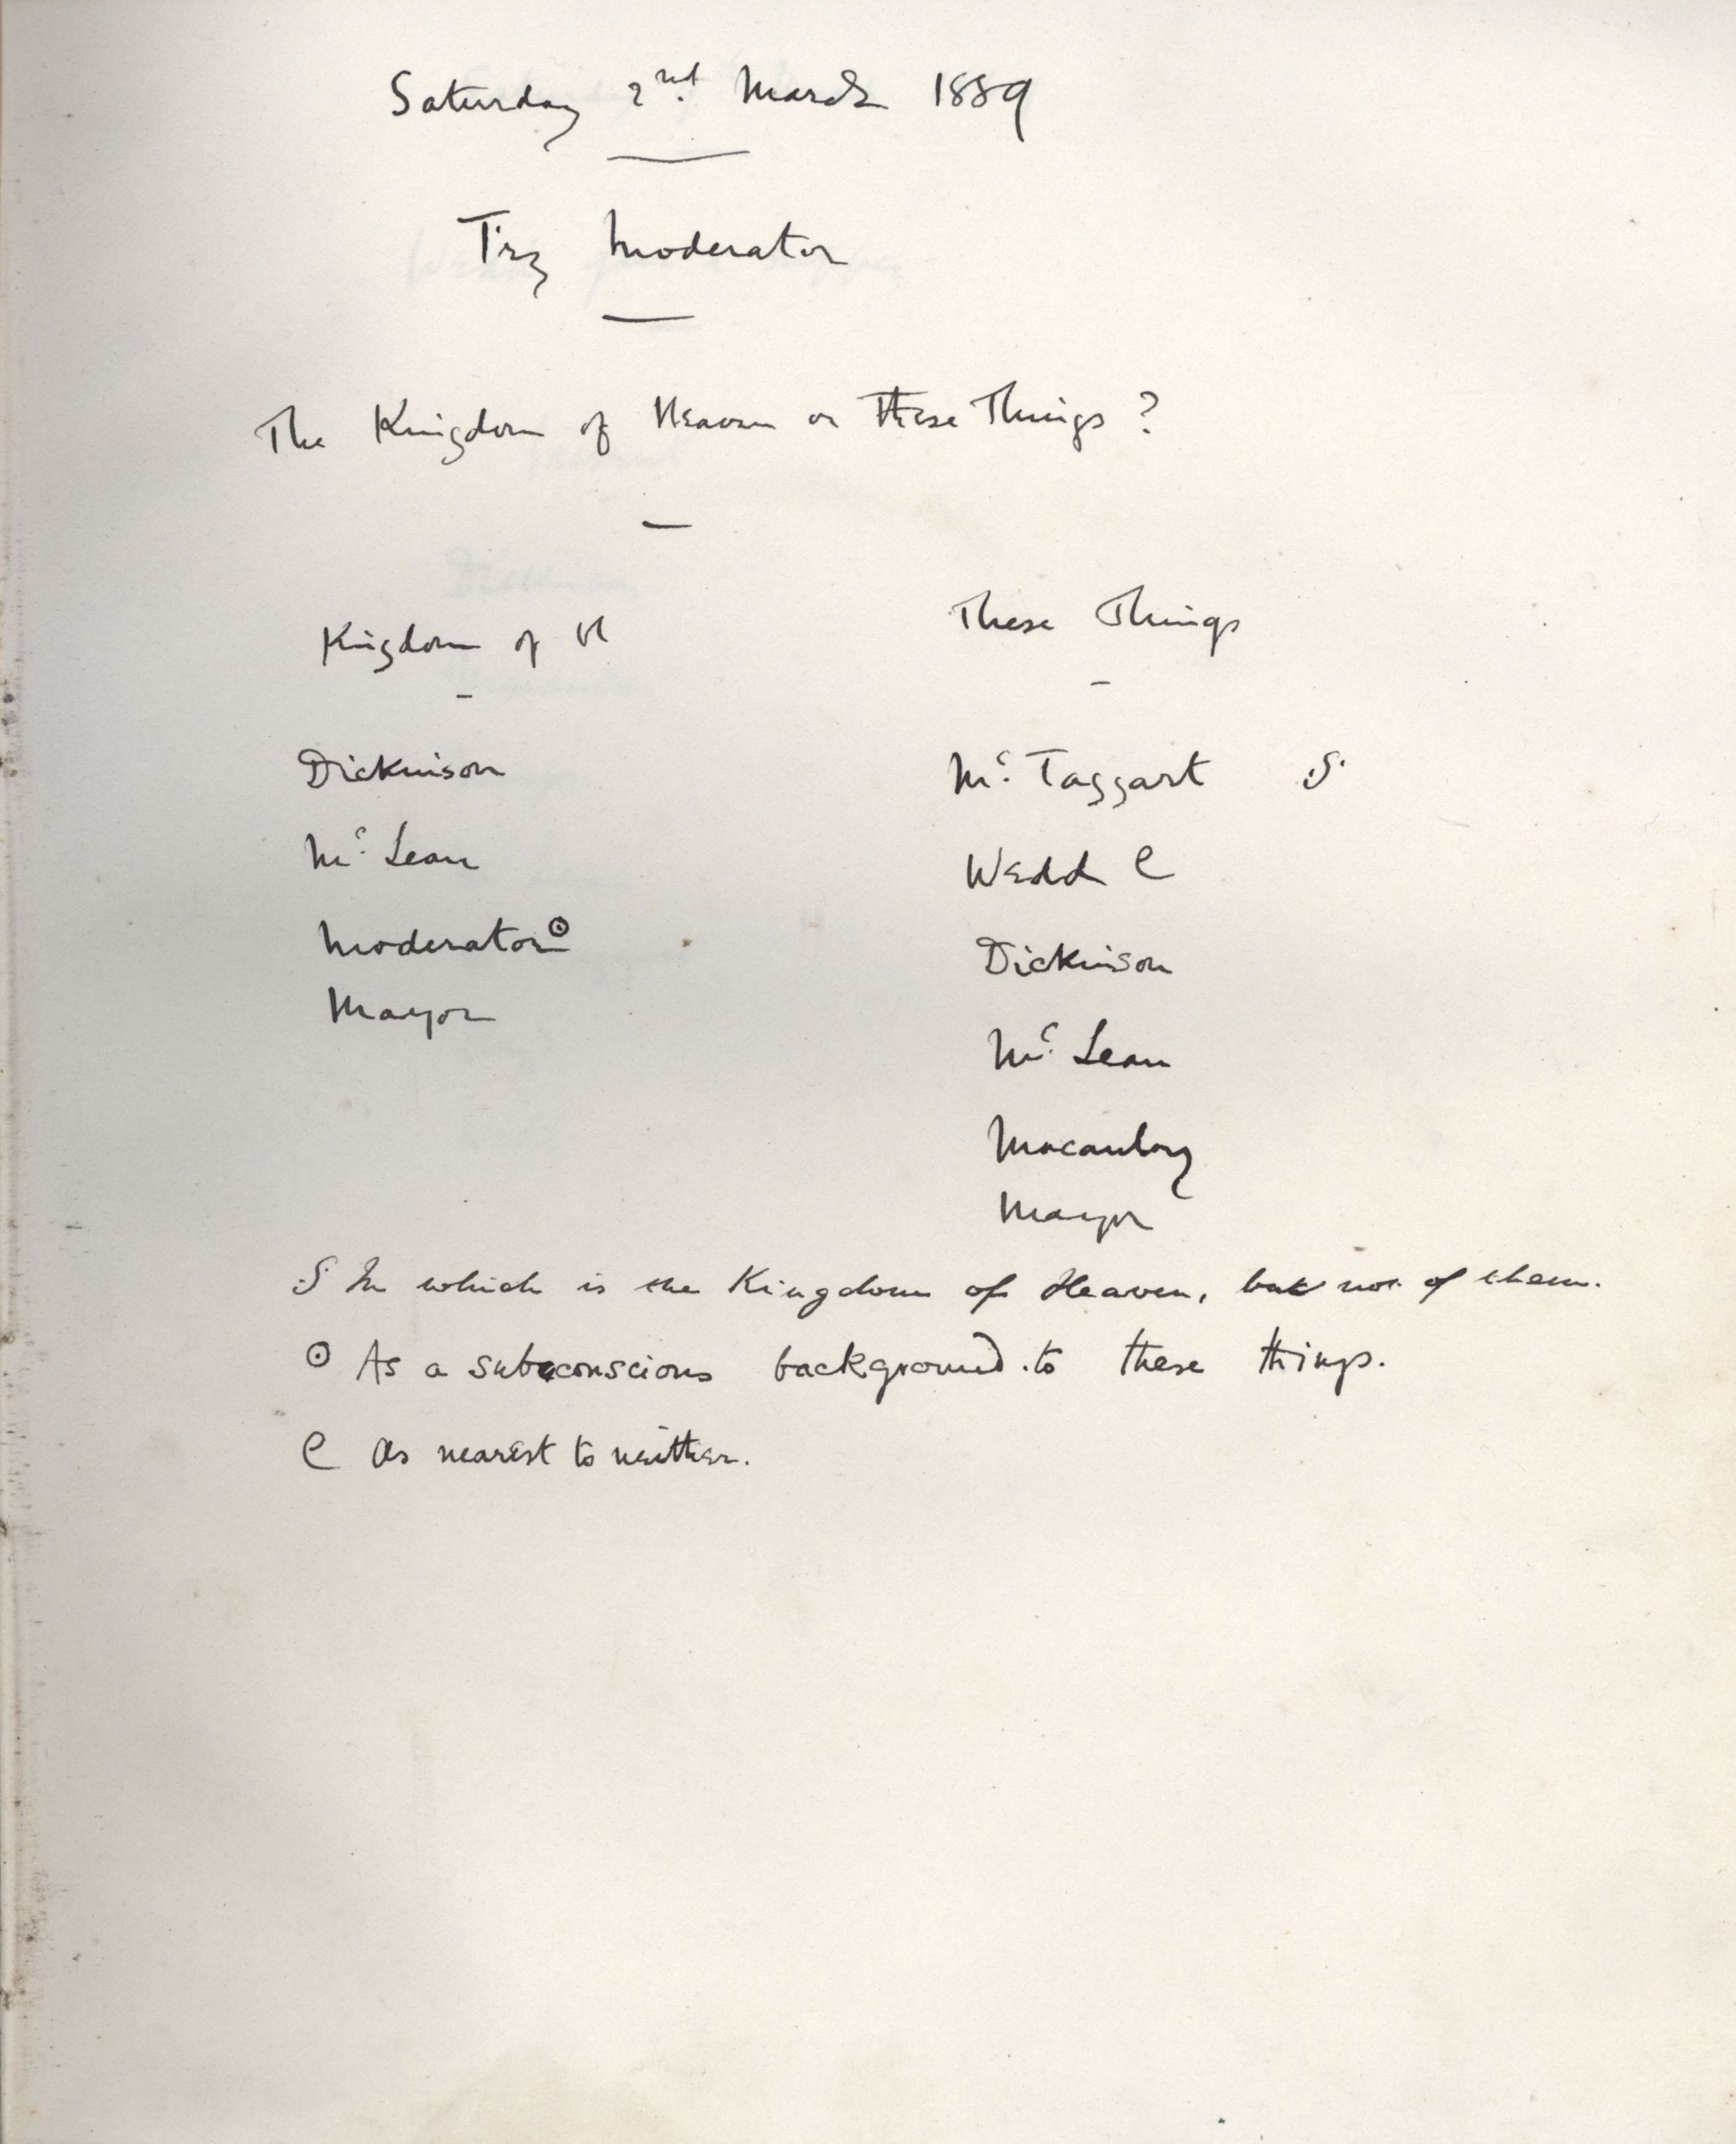 Minutes of a meeting in which Fry asked 'The Kingdom of Heaven or these Things?' [KCAS/39/1/11, 2 March 1889]